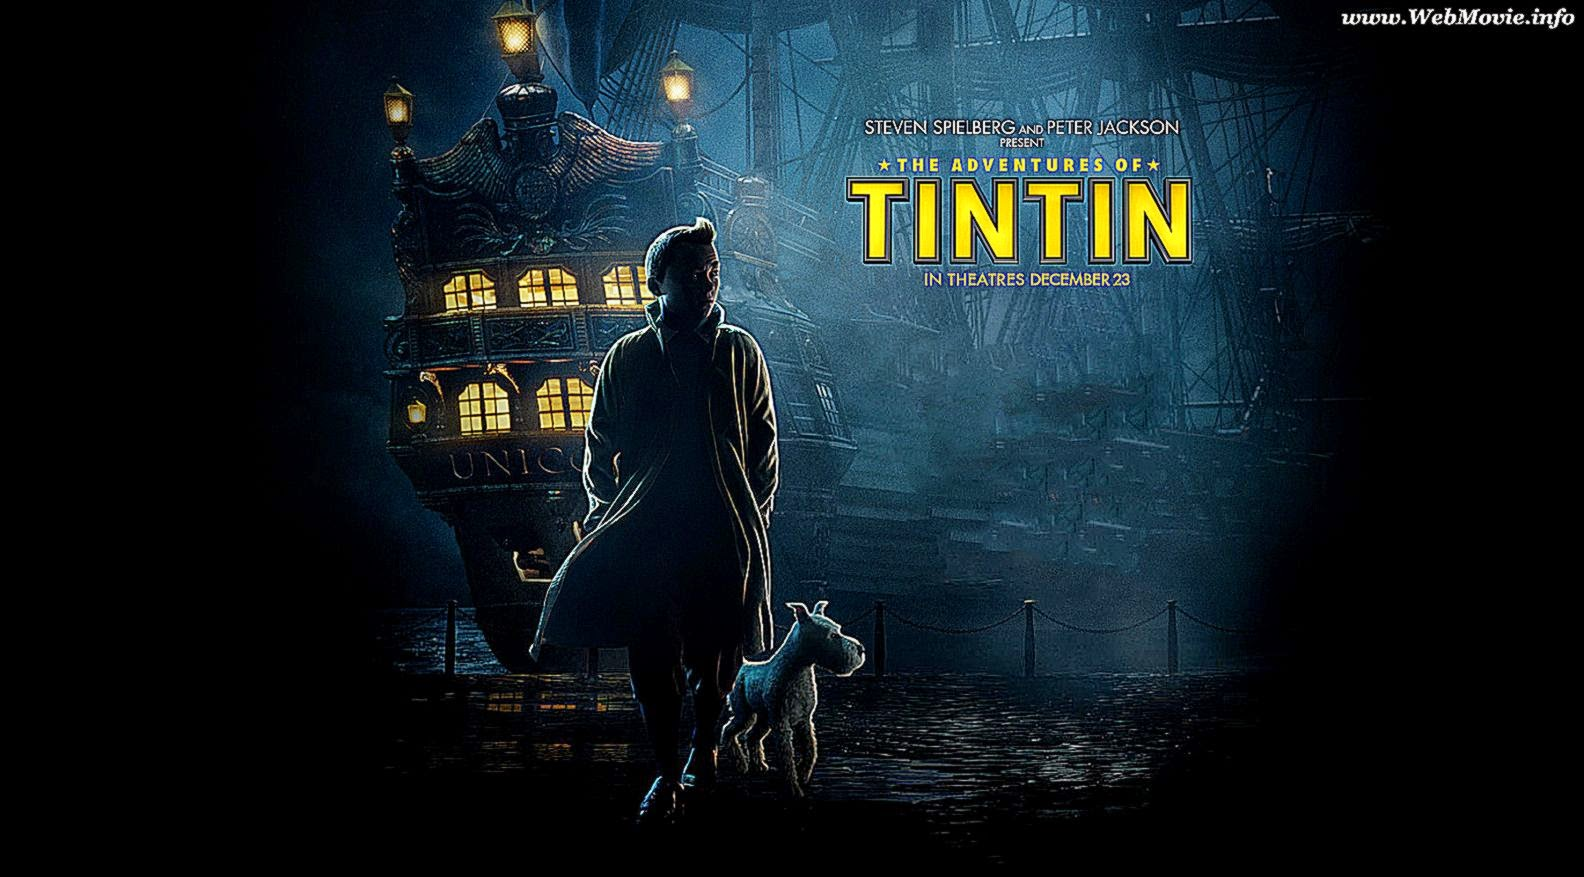 adventure of tintin The adventures of tintin trailer intrepid young reporter, tintin and his loyal dog, snowy are thrust into a world of high adventure when they discover a ship carrying an explosive secret.